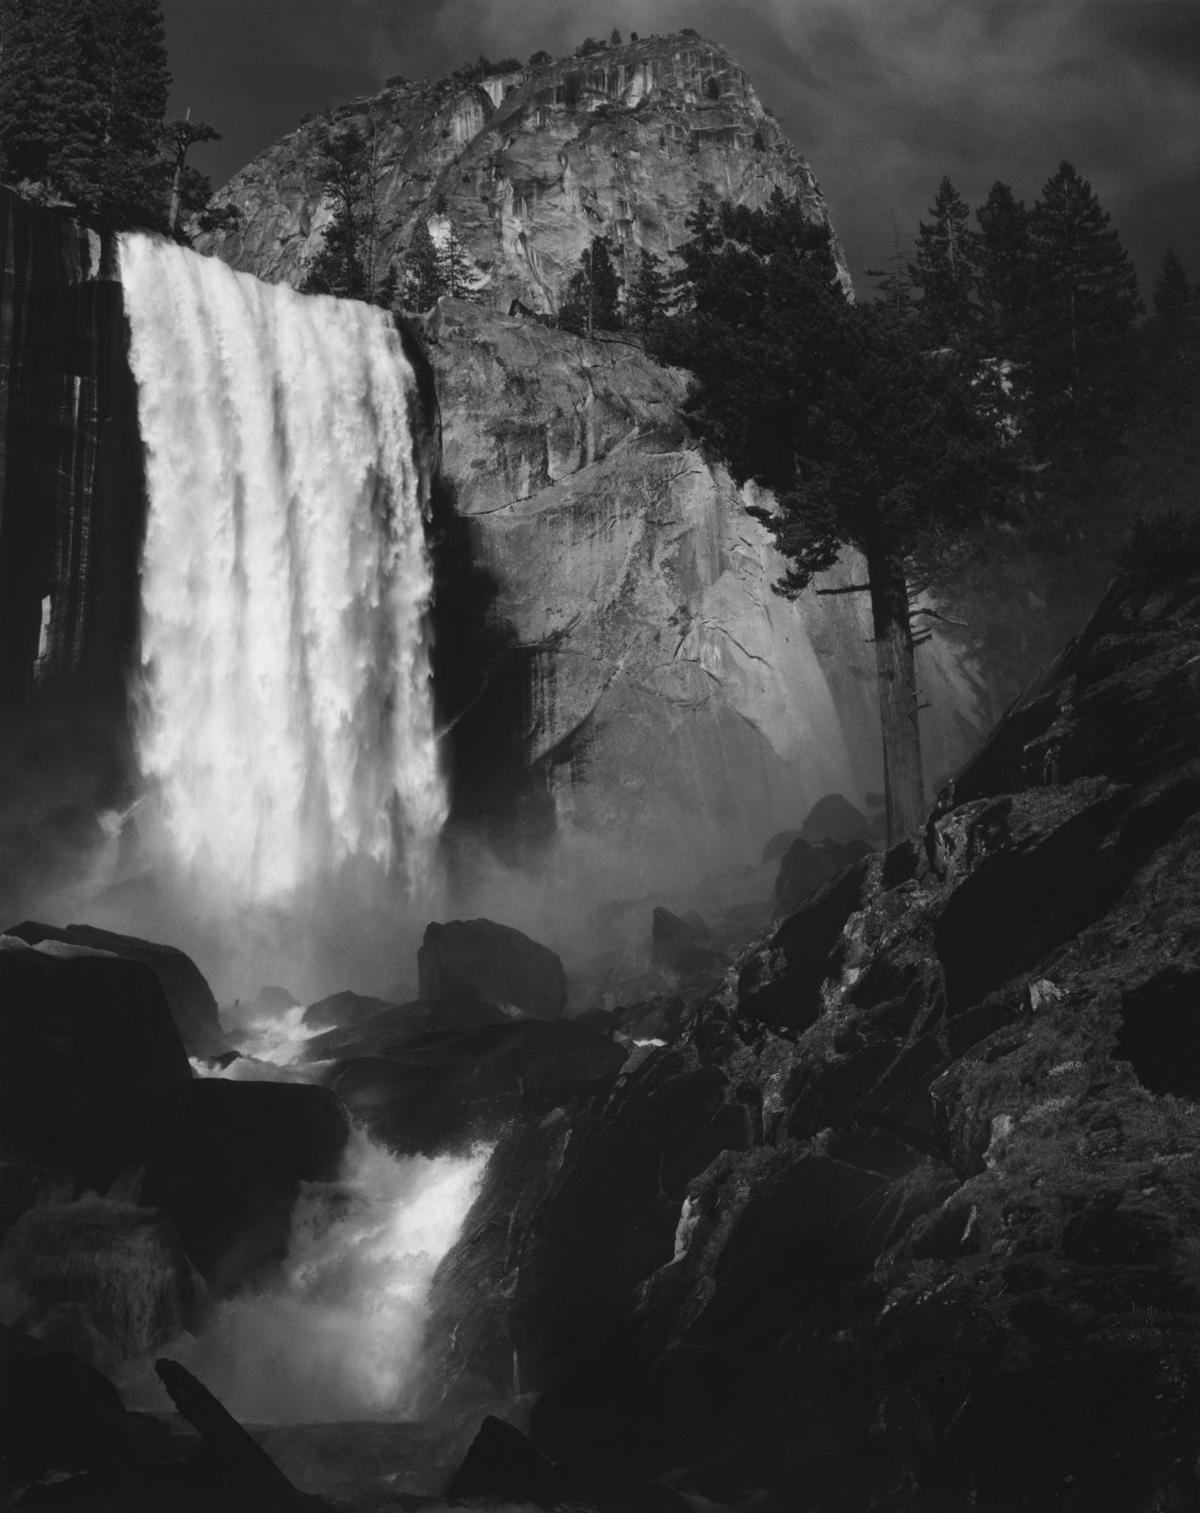 Big-name Ansel Adams show on display in Munster